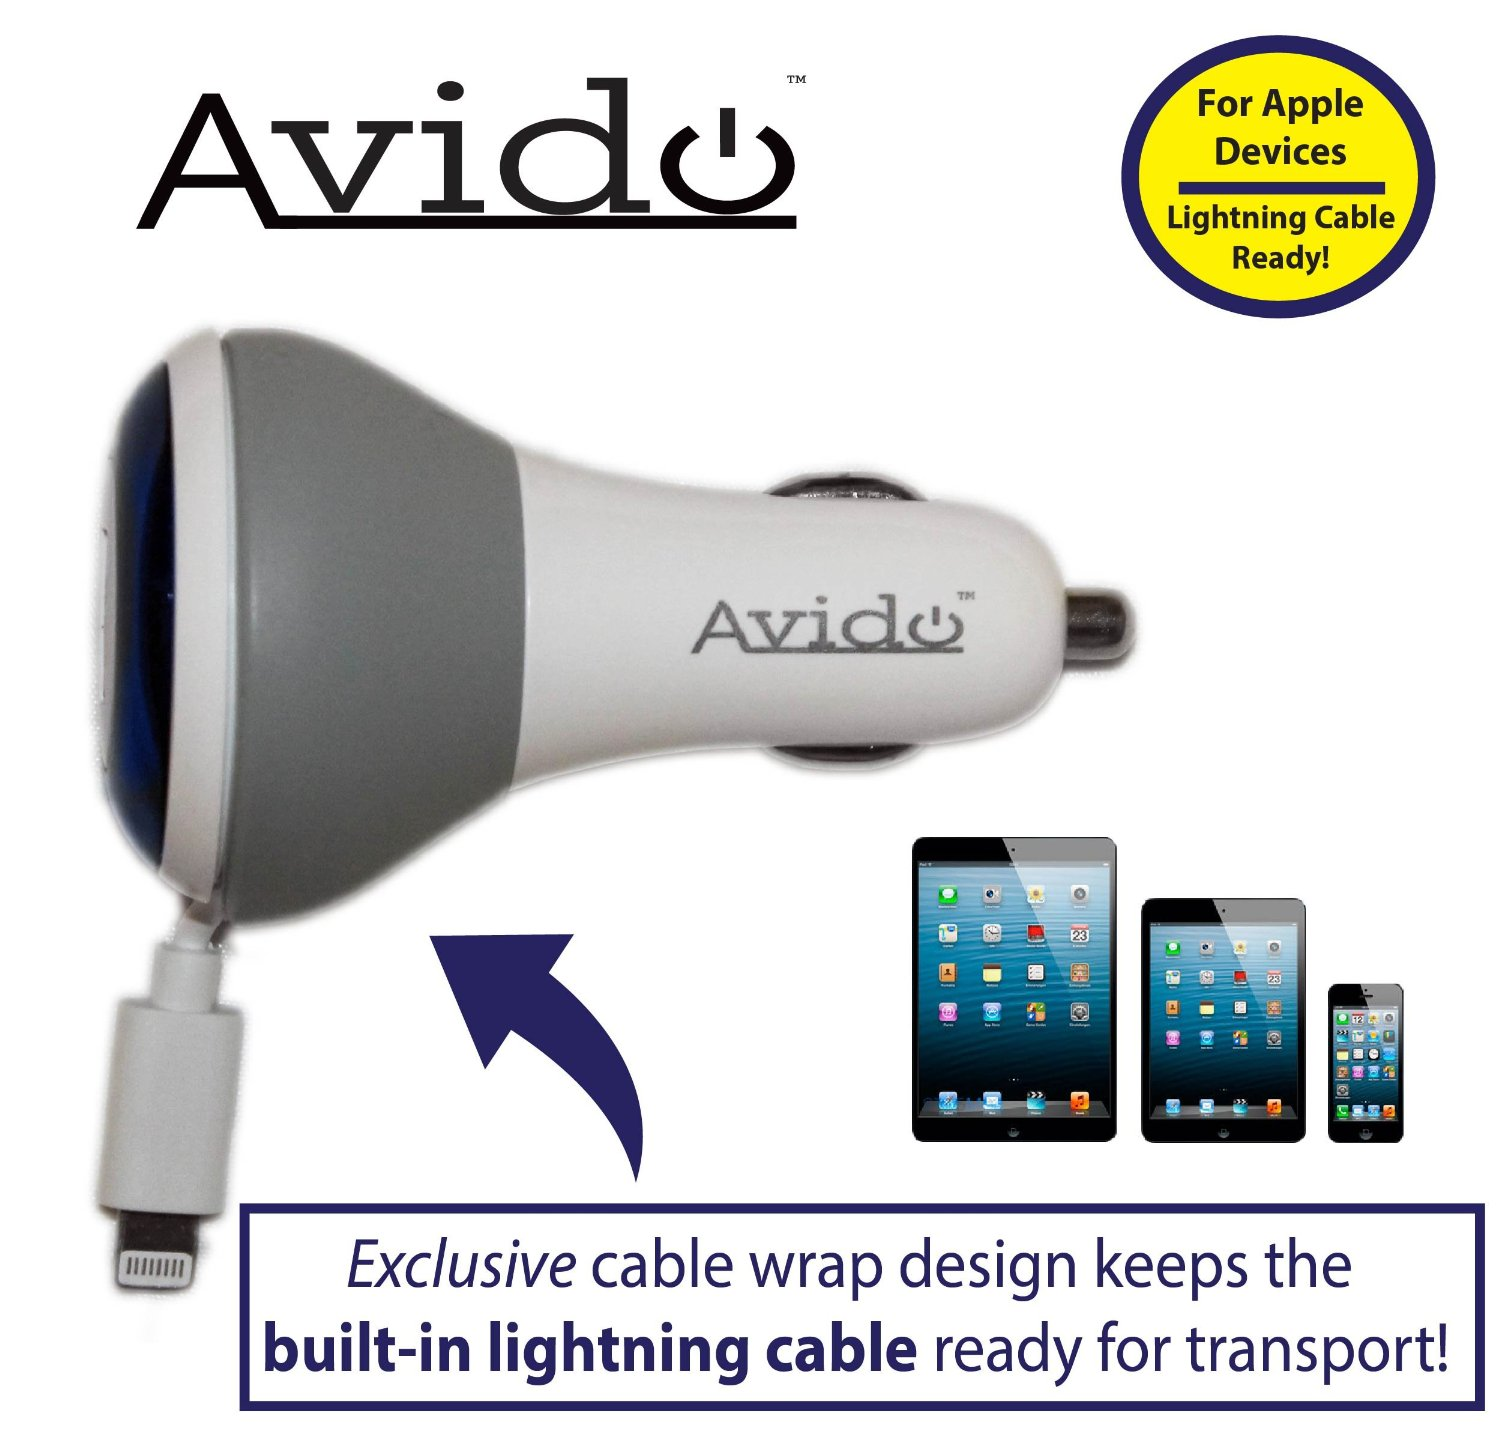 Avido™ Lightning Car Charger with Exclusive *Built-in Cable Wrap* and Two High-Speed 2.4A / 2.1A USB Ports - 2.3 Feet (70cm) - for iPhone 6/ 6s, iPhone 6/ 6s Plus, iPhone 5, iPhone 5c, iPhone 5s, iPad 4, iPad Air, iPad Air 2, iPad Mini, iPad Mini 3, iPod Touch 5, iPod Nano 7. Pefect For Travel and